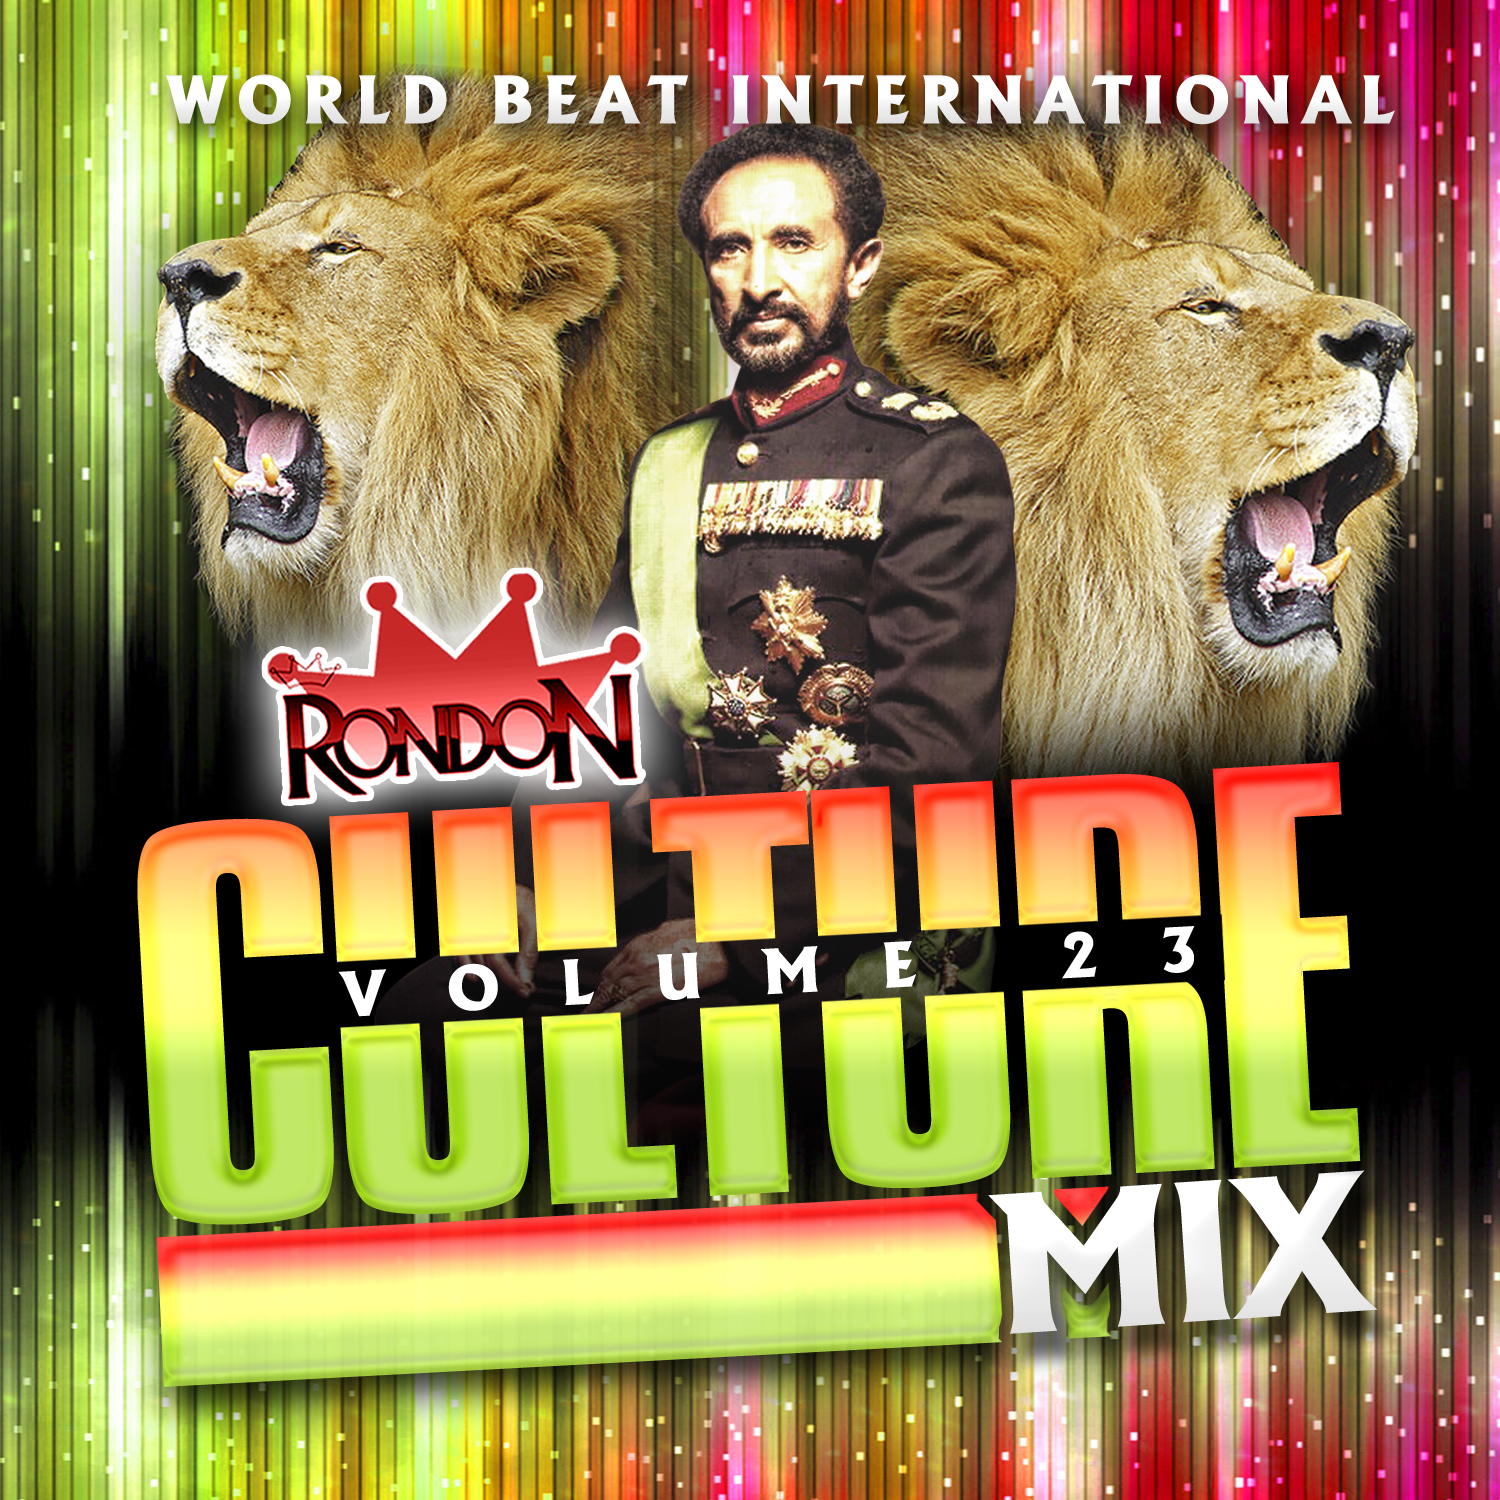 CULTURE MIX REGGAE VOL  23 (DOWNLOAD ONLY)